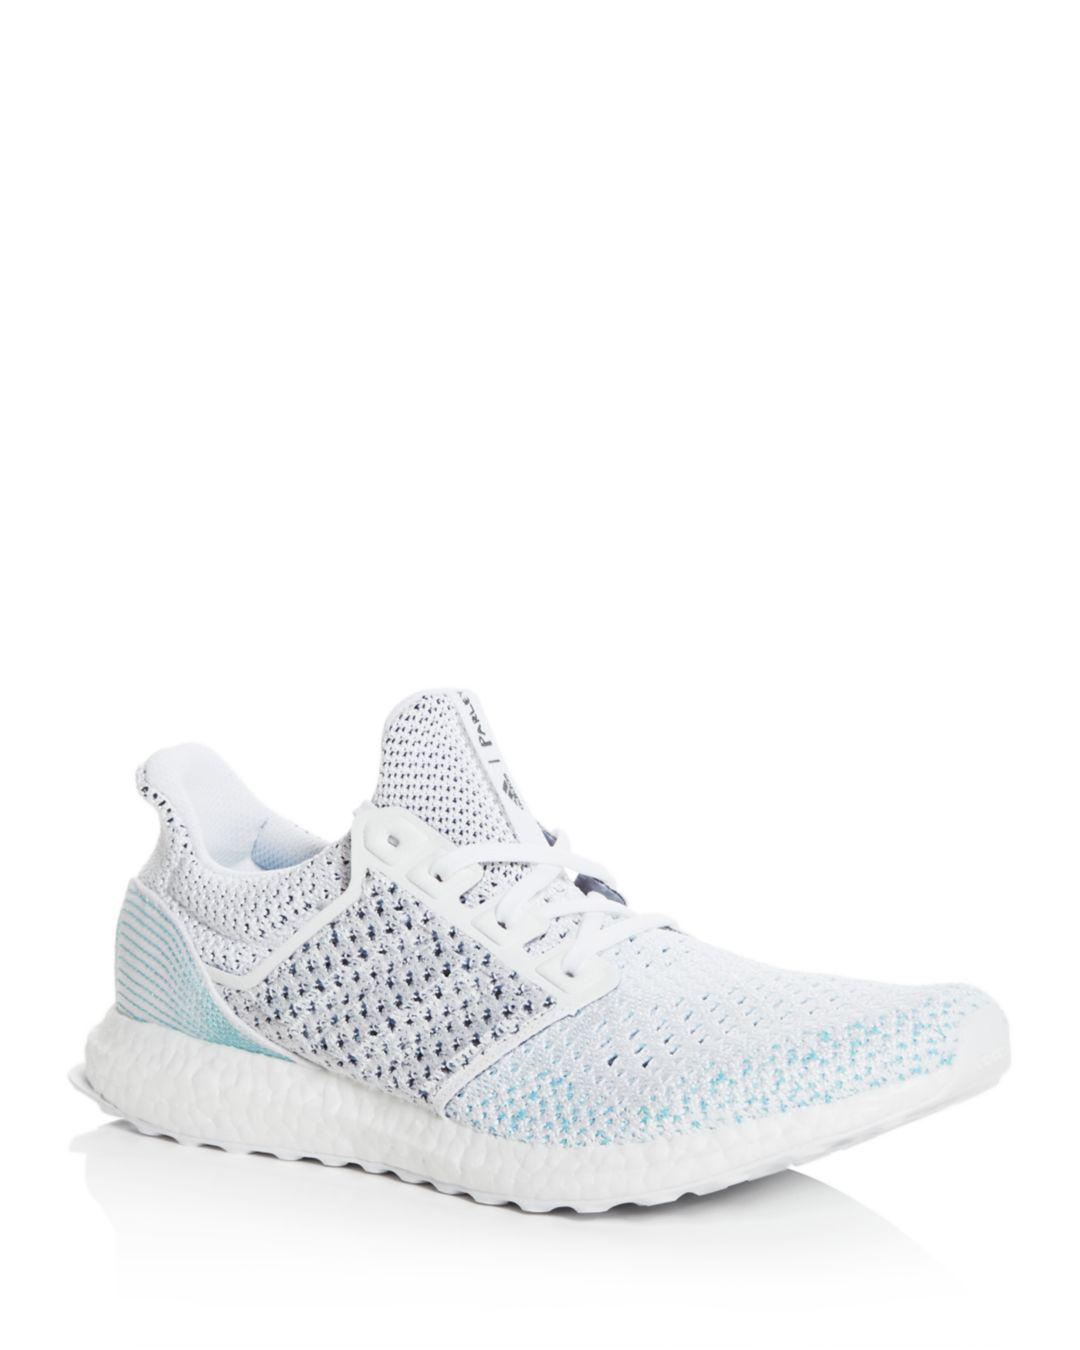 c4ae32b4e78faf Lyst - adidas Men s Ultraboost Parley Knit Lace Up Sneakers in White ...